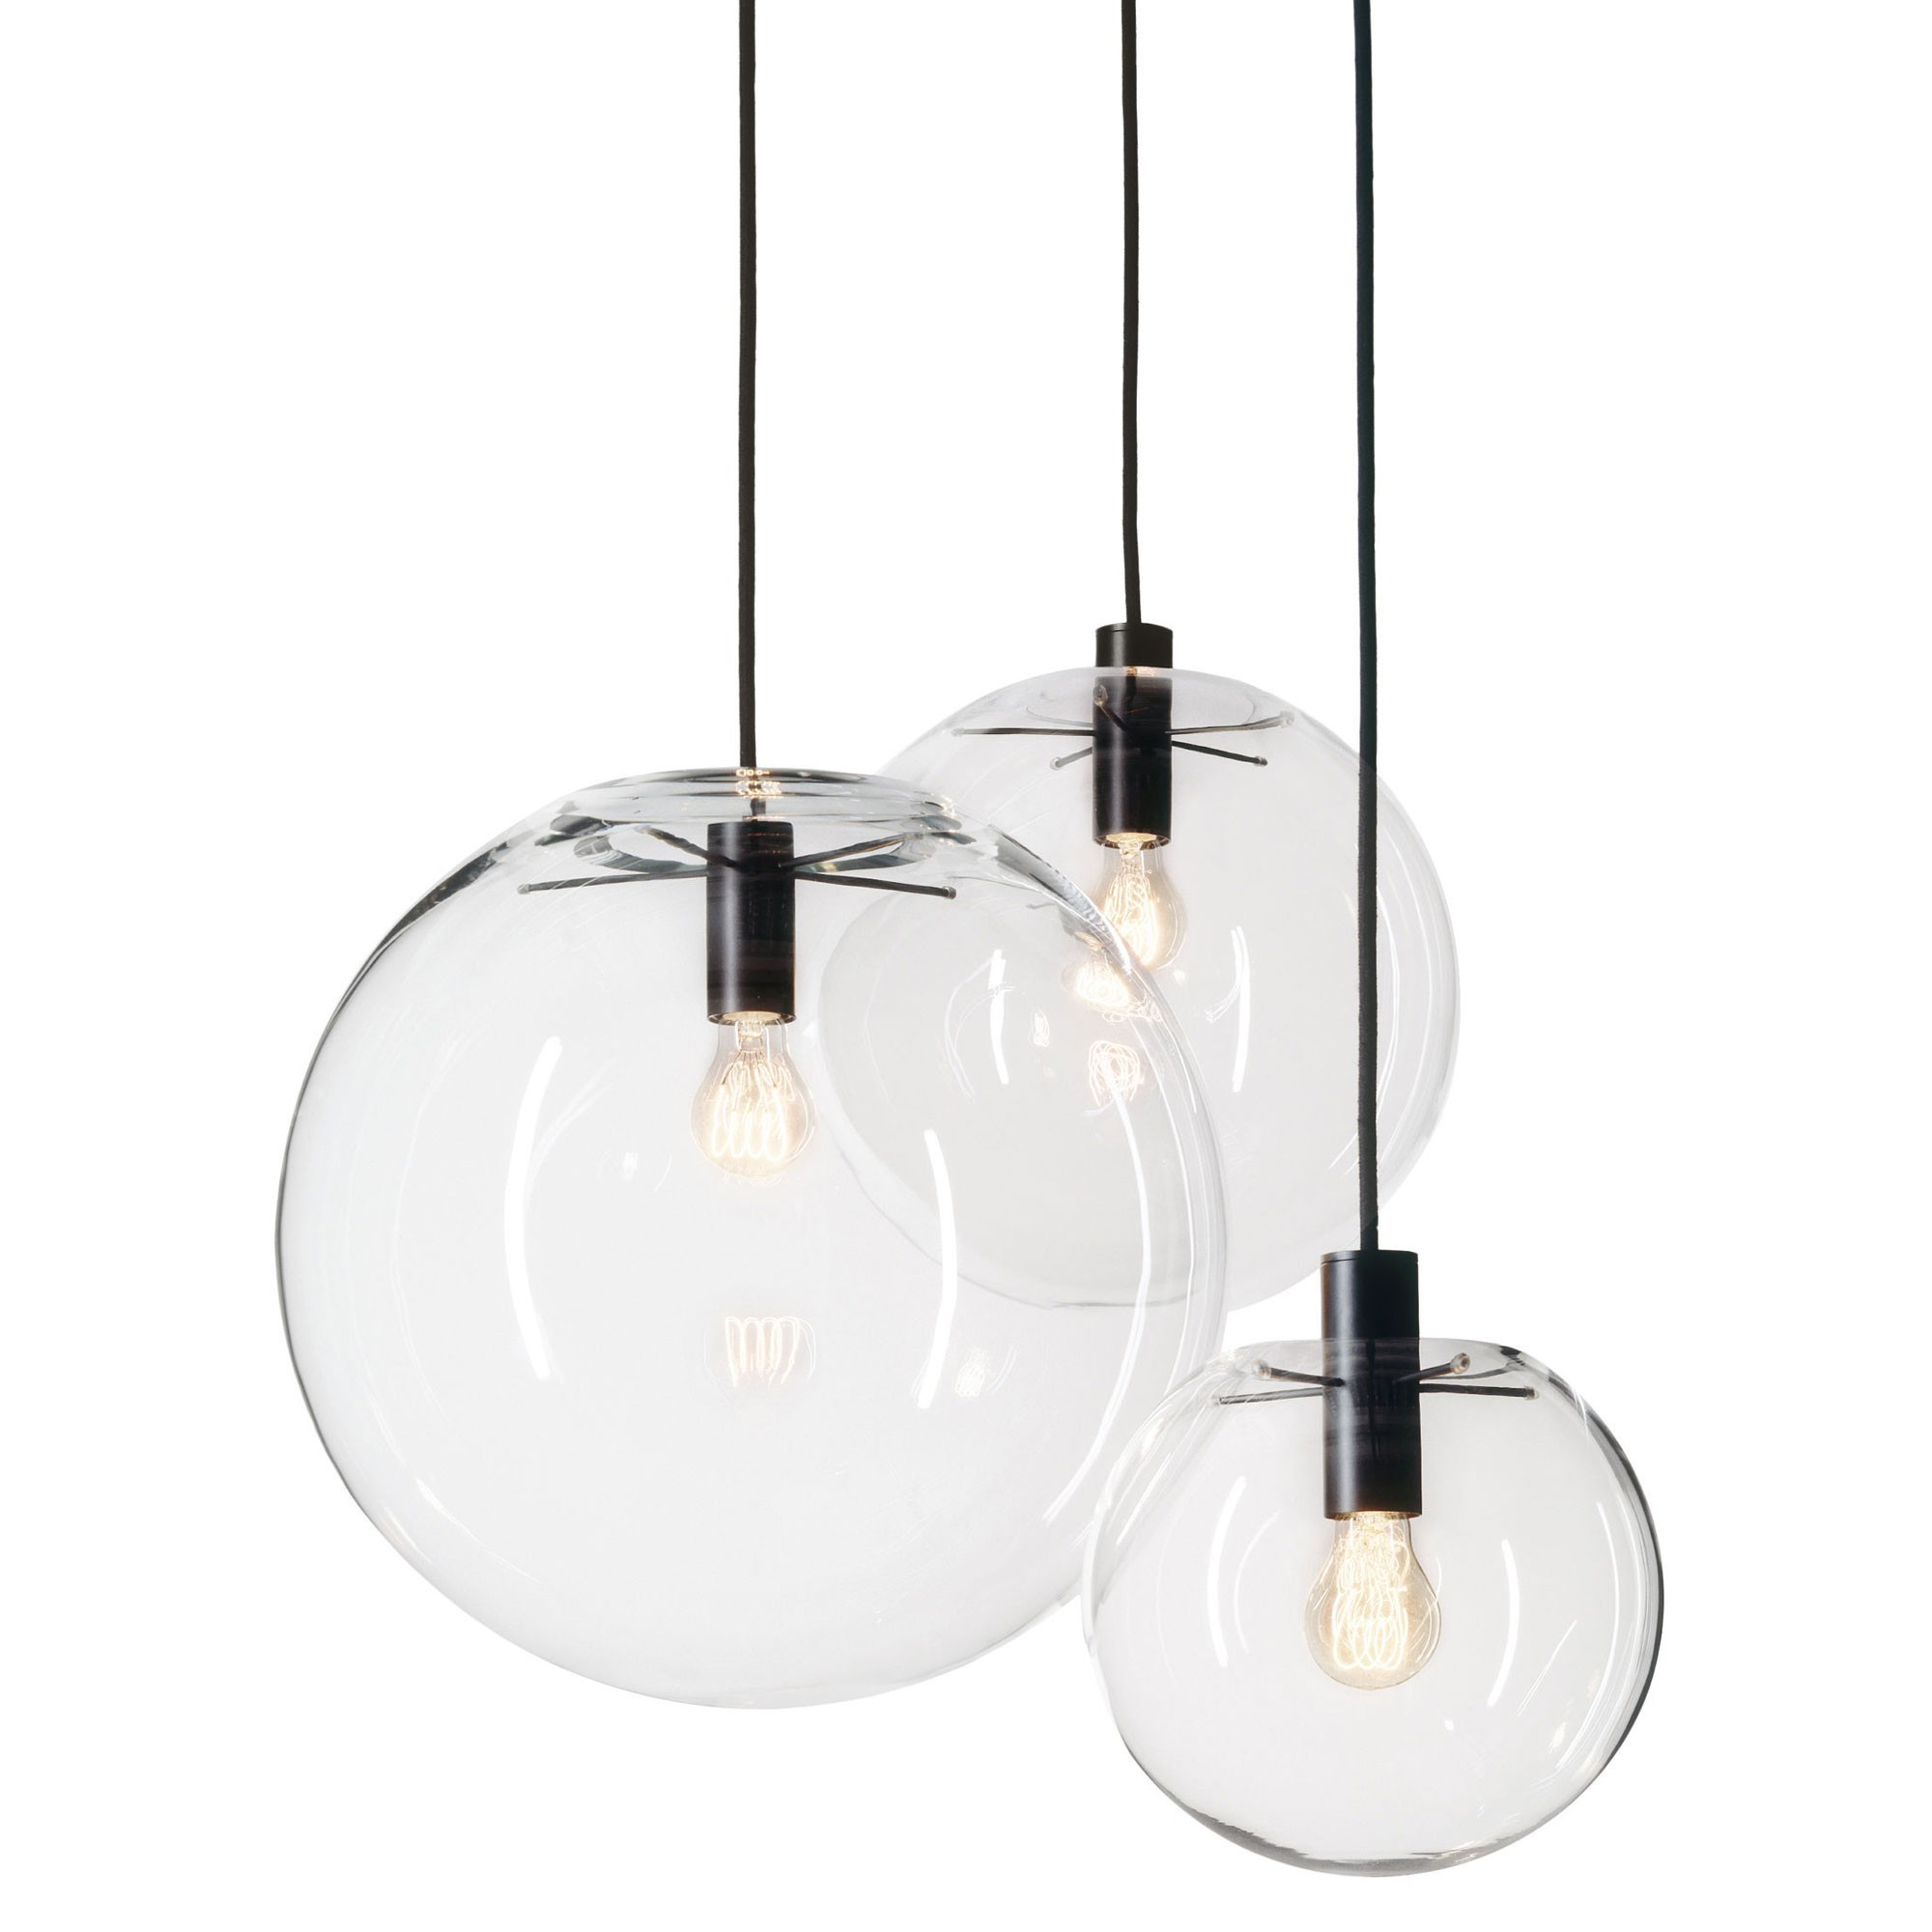 French Provincial Lighting Australia Pendant Lights Temple Webster